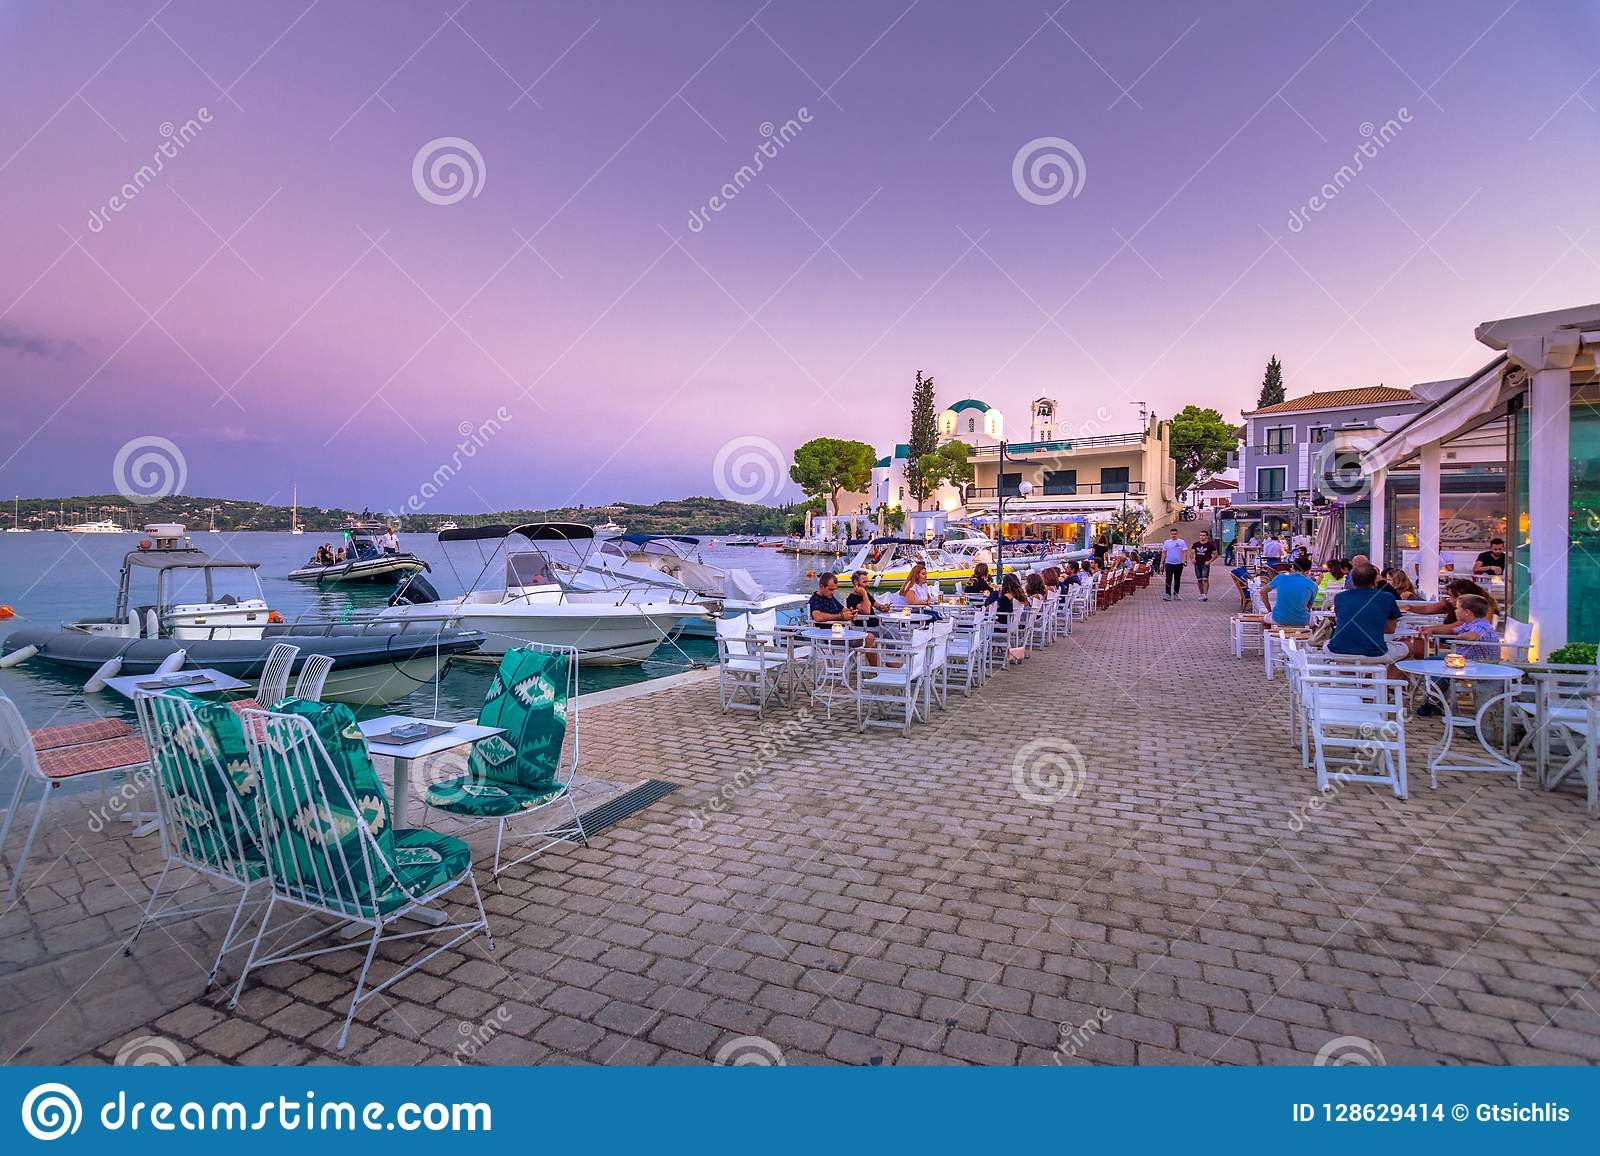 View of the picturesque coastal town of Porto Heli, Peloponnese.